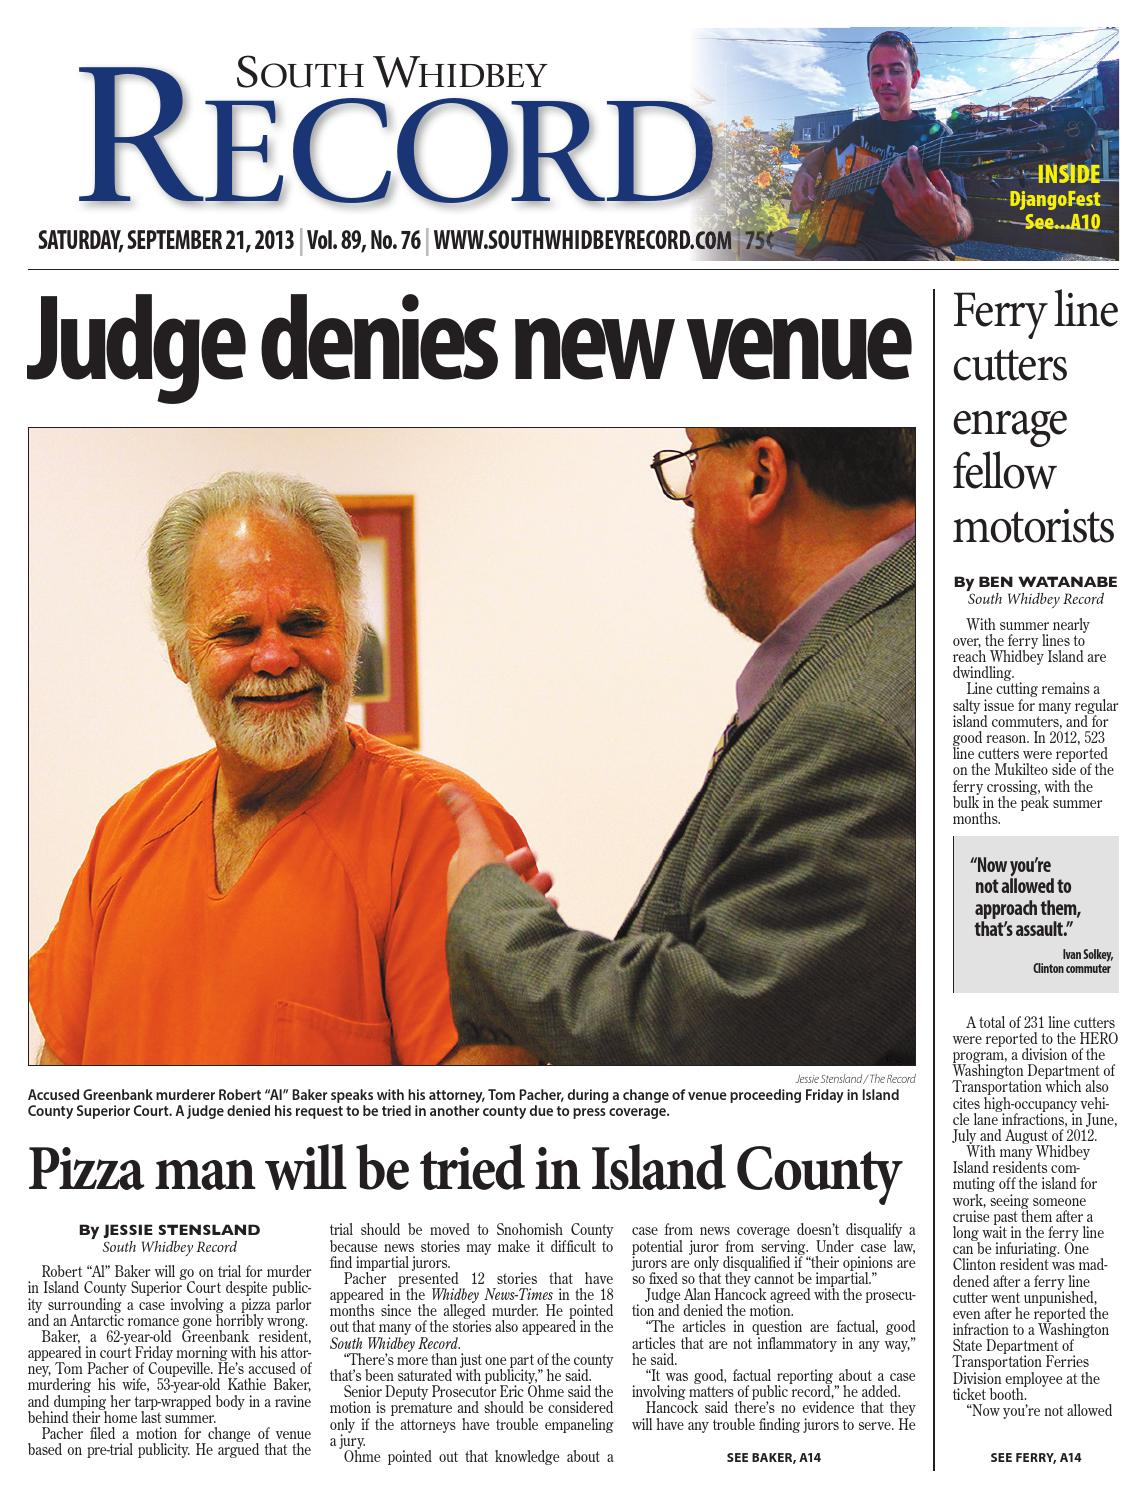 South Whidbey Record, September 21, 2013 by Sound Publishing